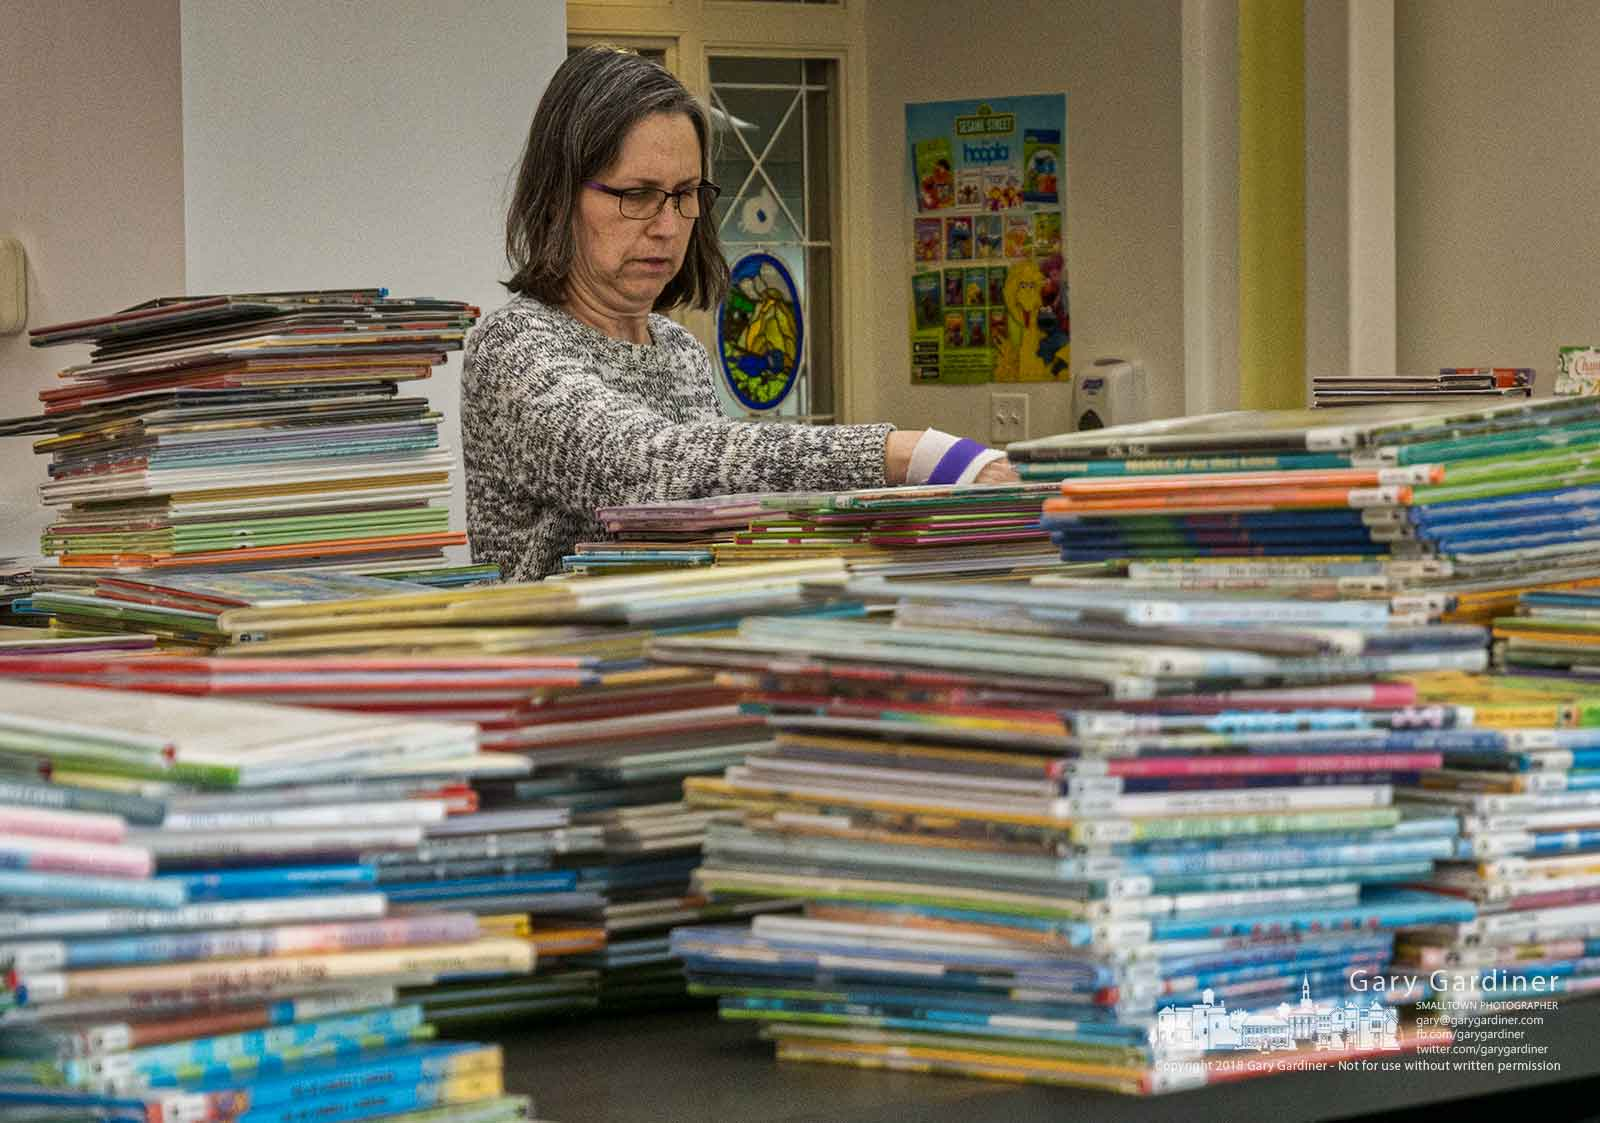 A librarian sorts through some of the books damaged by an overnight leak from a broken water heater at the Westerville Public Library. My Final Photo for March 16, 2018.